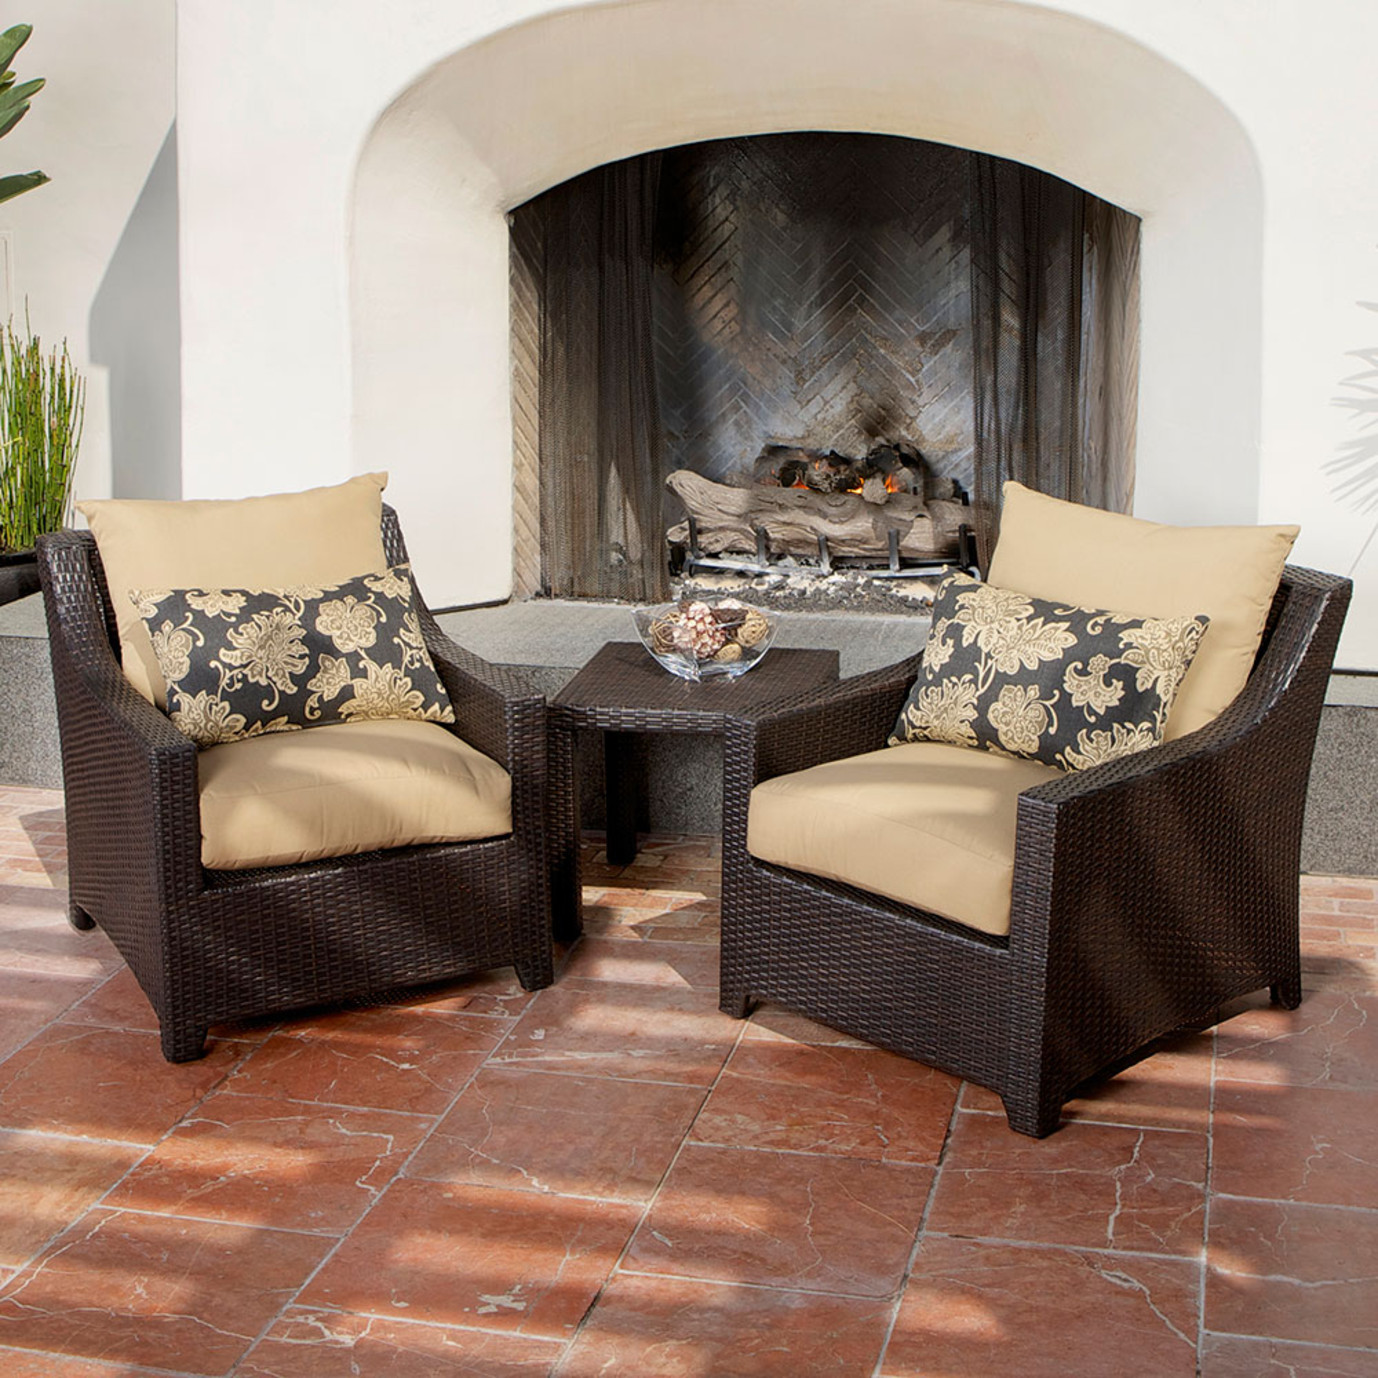 Deco Club Chairs and Side Table - Delano Beige